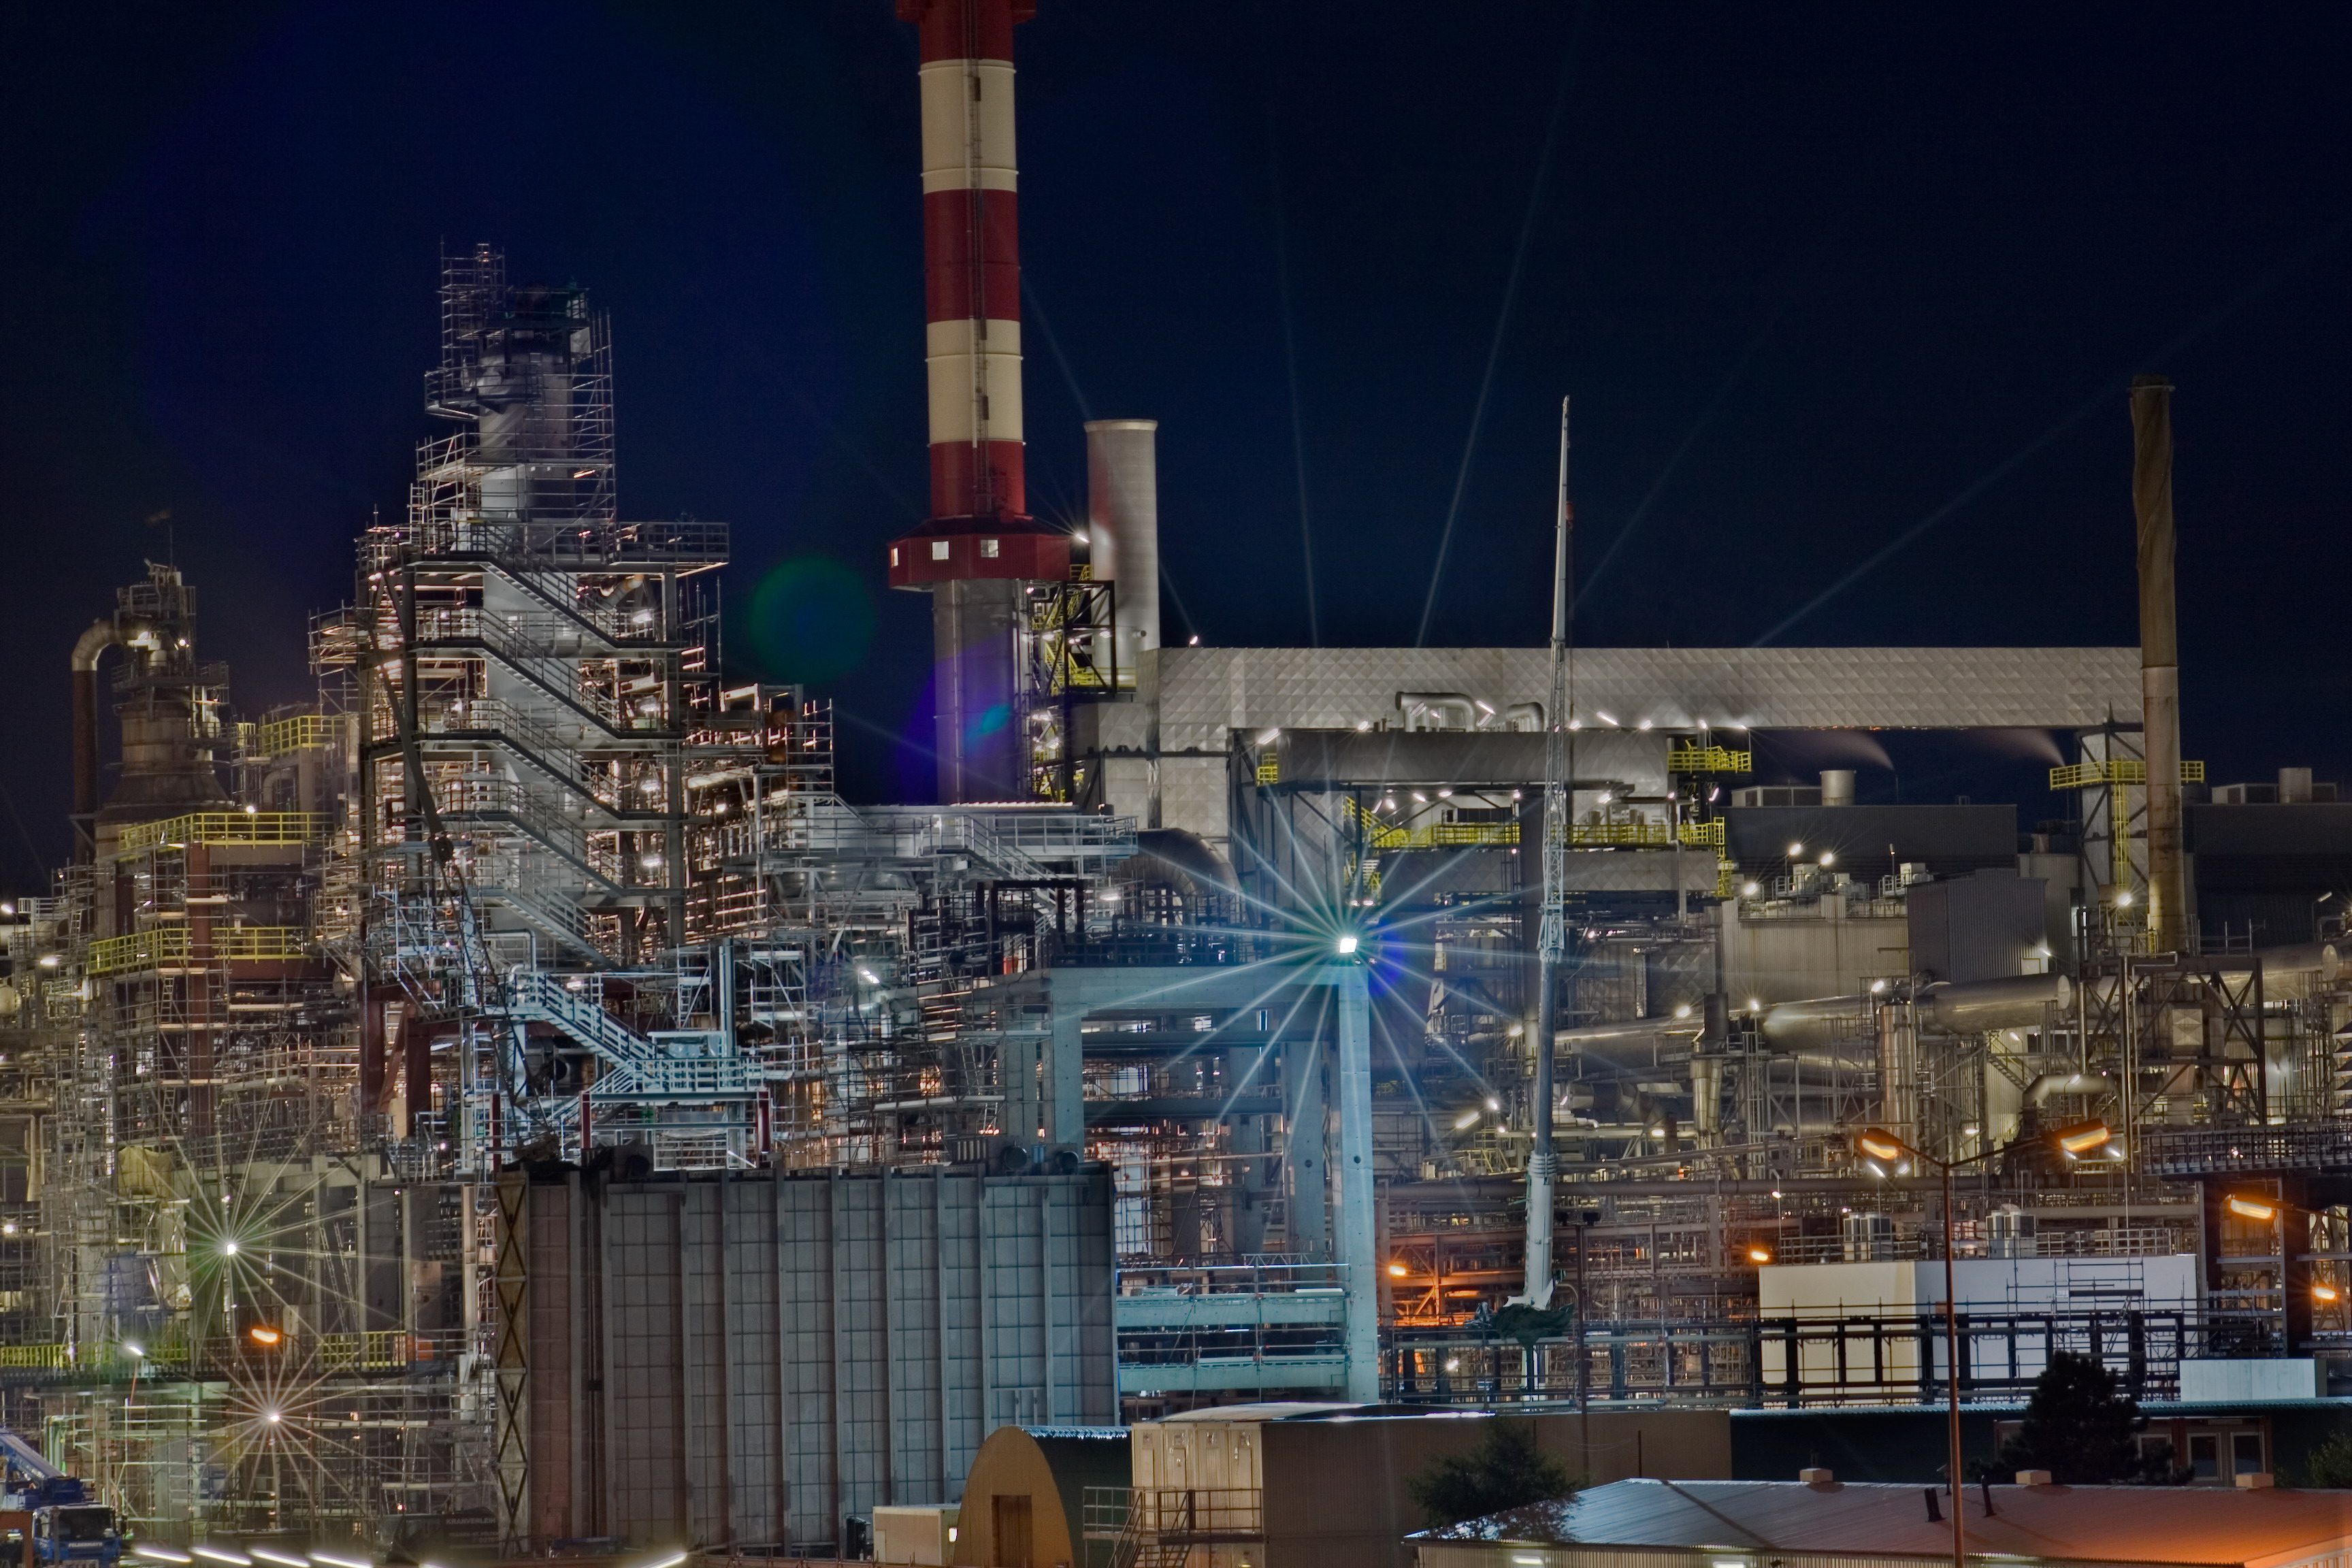 Fullsize Schwechat Refinery DRI Night